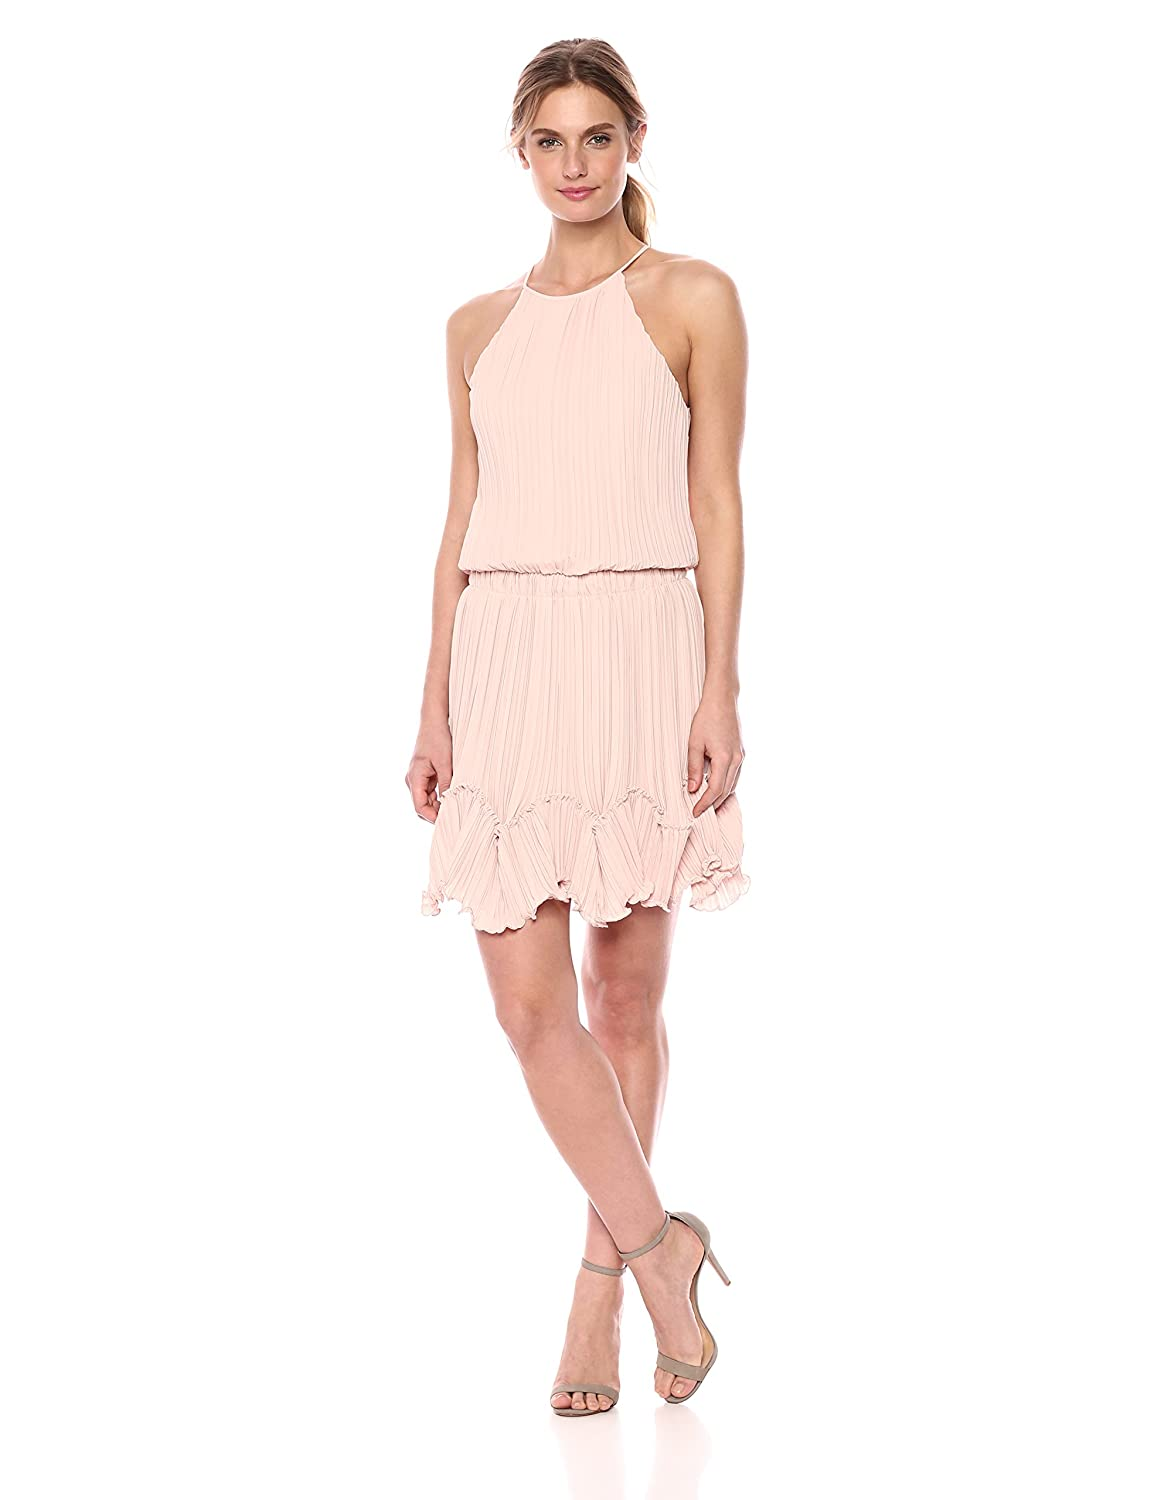 Bloom Halston Heritage Womens Sleeveless Round Neck Dress with Pleated Flounce Cocktail Dress